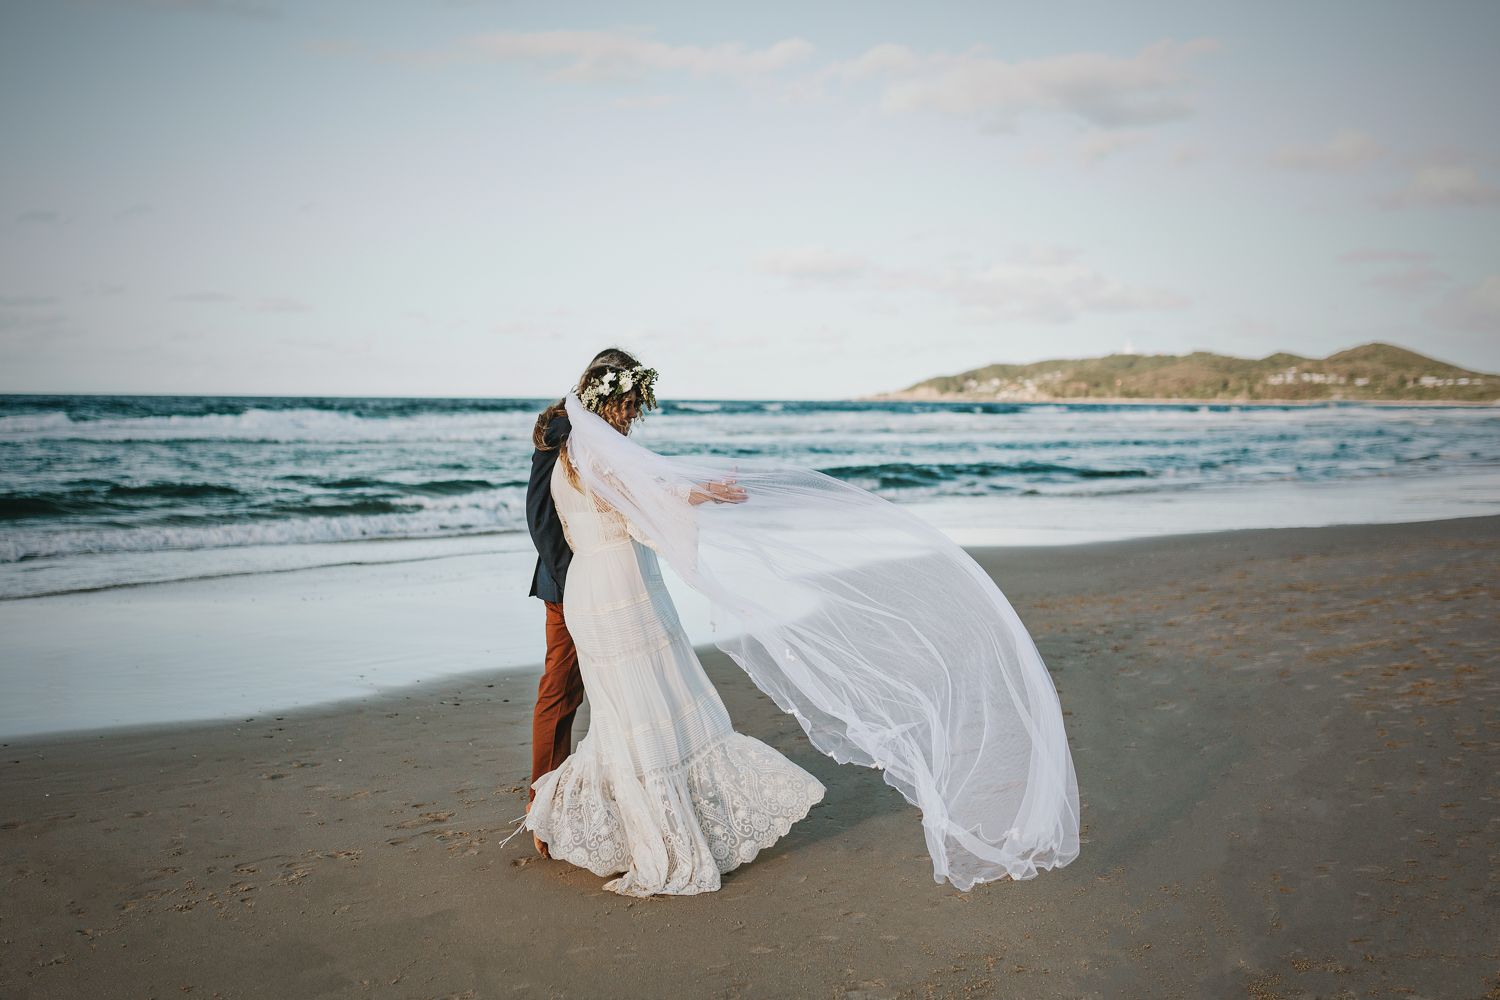 Bride and groom walk with veil blowing in breeze.